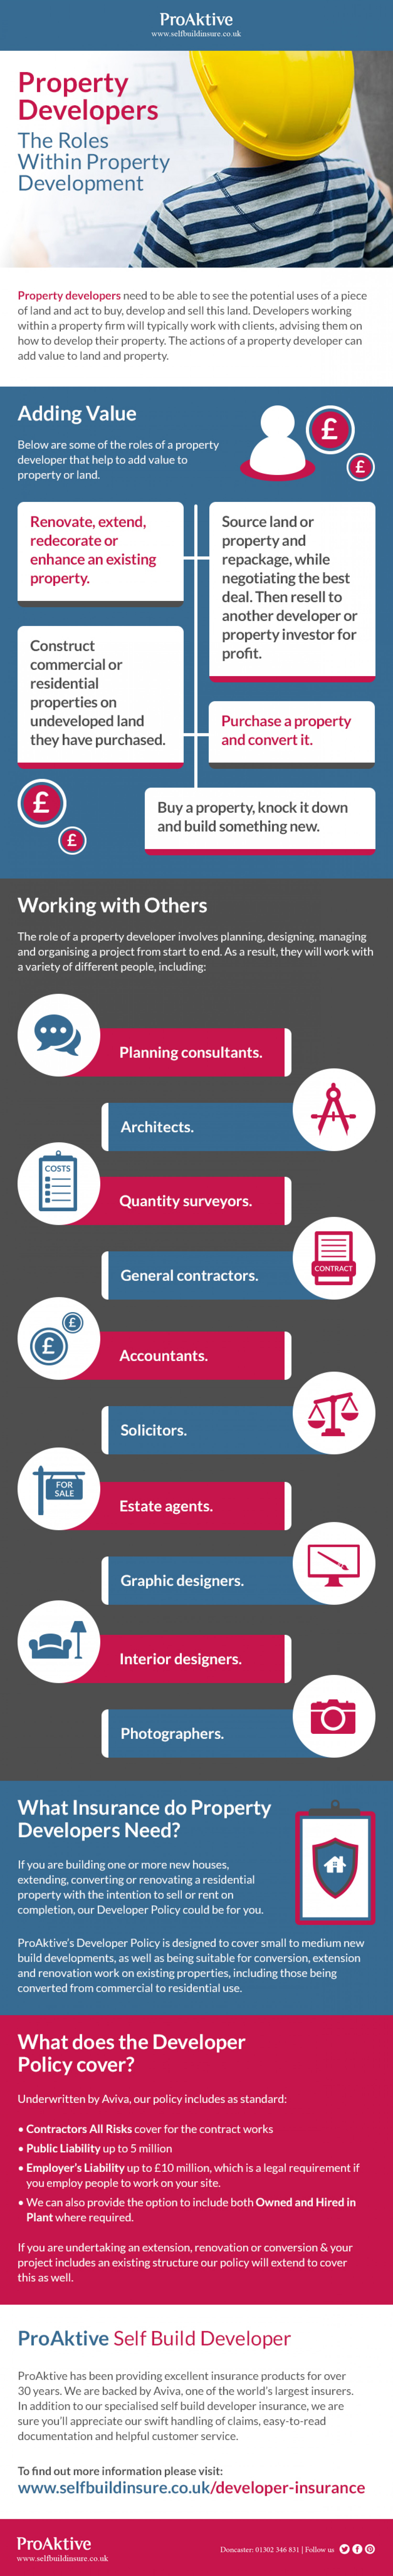 Property Developers: The Roles Within Property Development Infographic